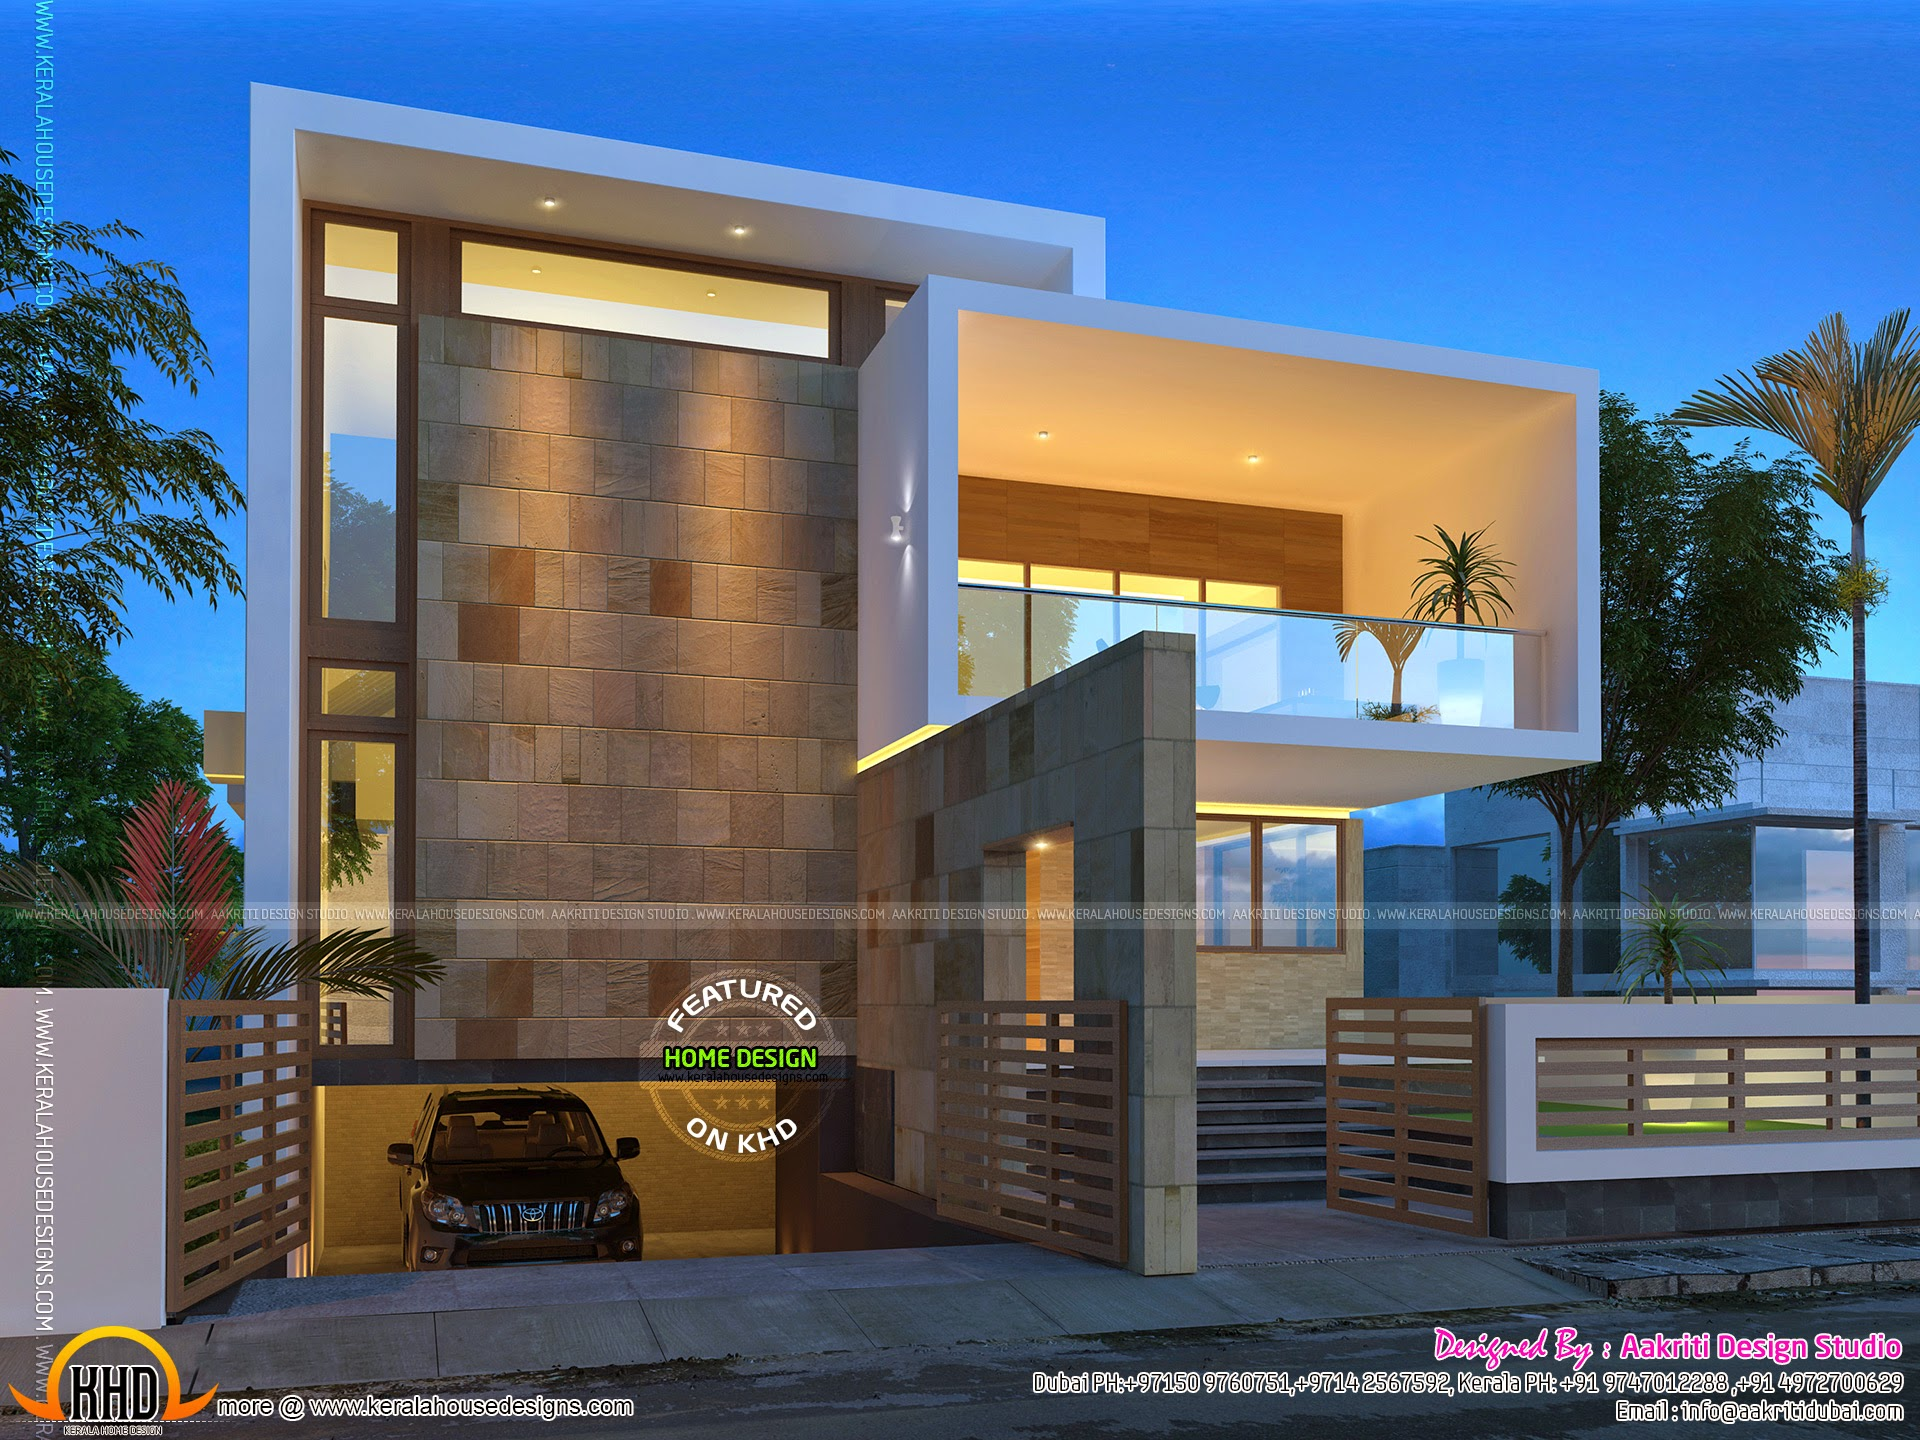 Beautiful contemporary home night views kerala home design and floor plans - Contemporary home ...